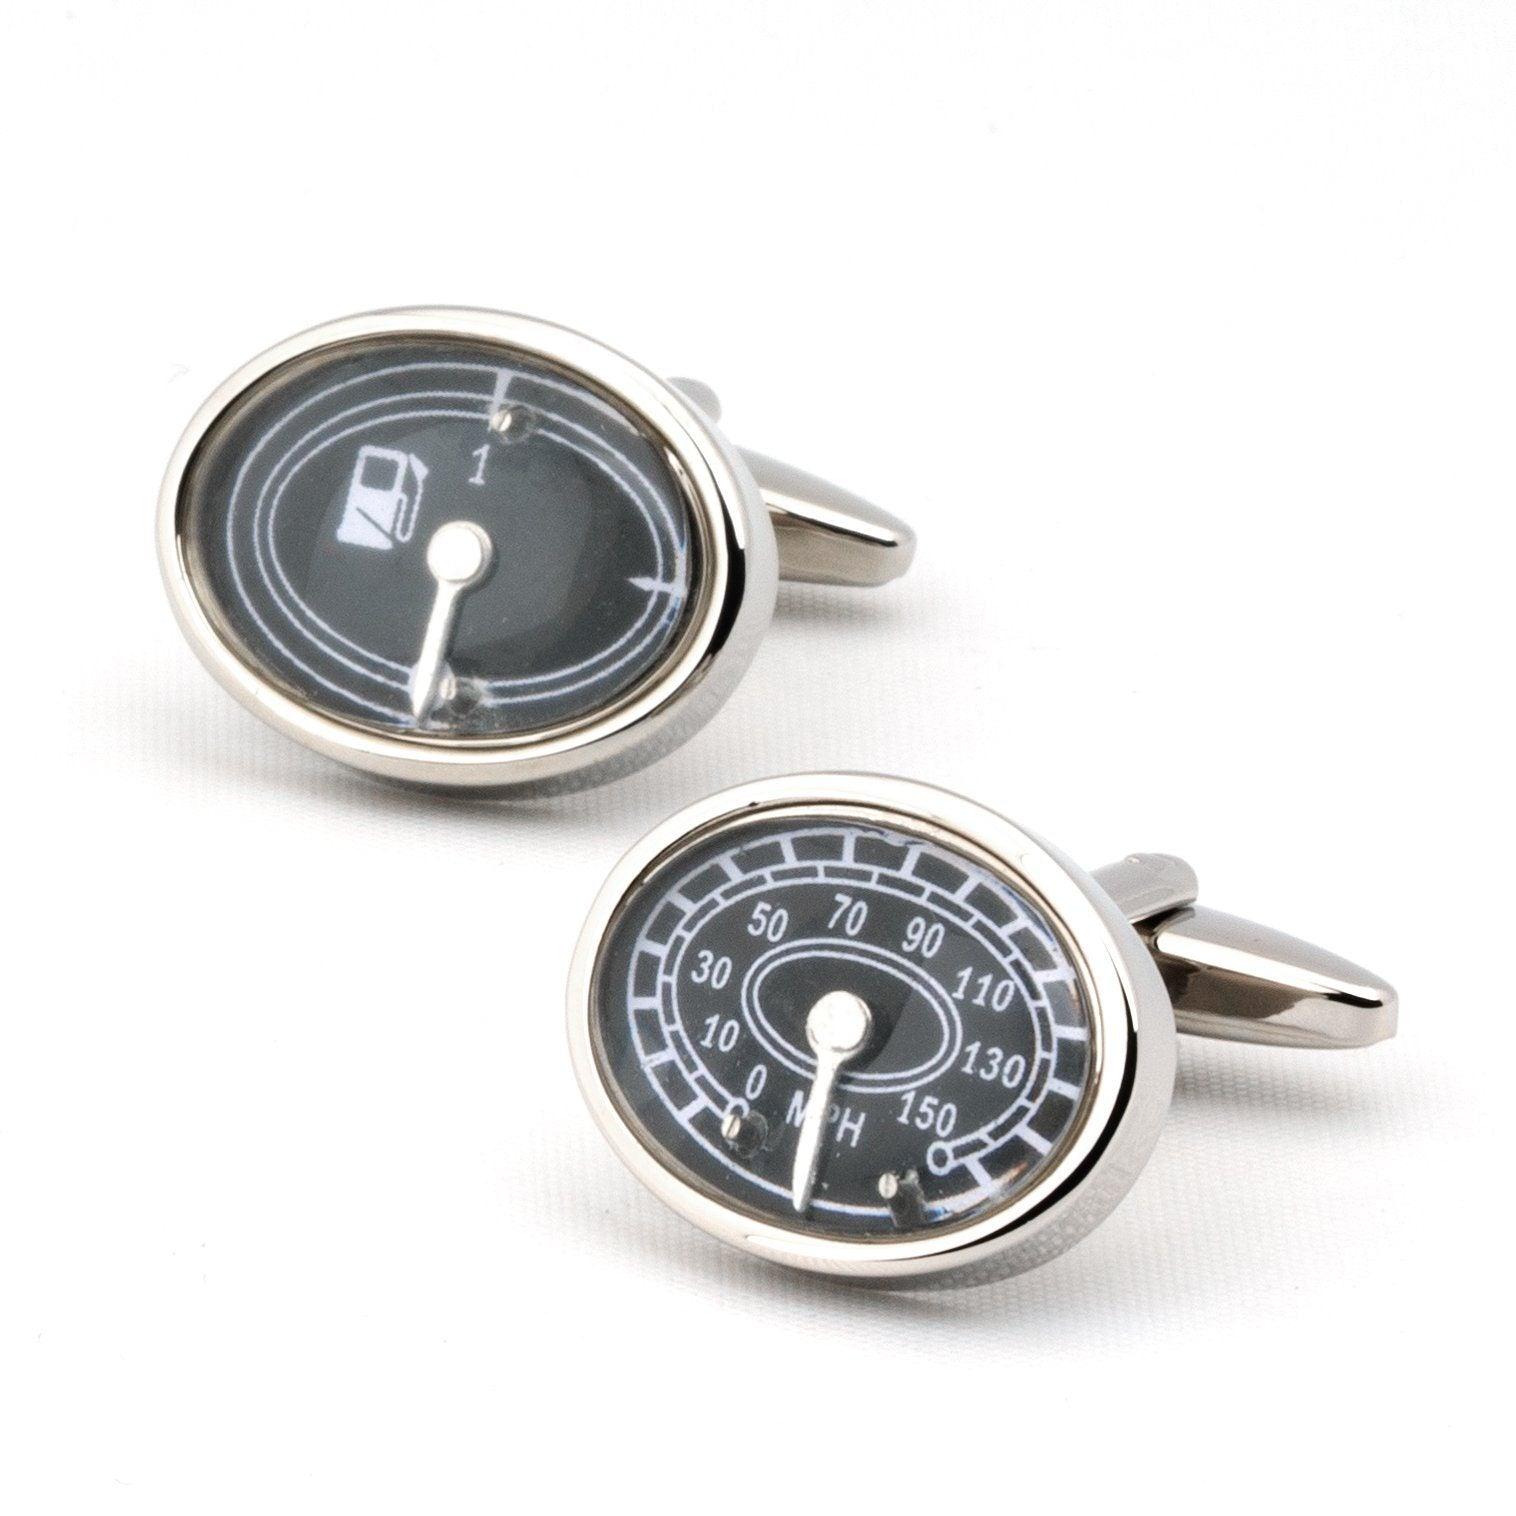 Fuel Gauge & Speedometer Cufflinks Novelty Cufflinks Clinks Australia